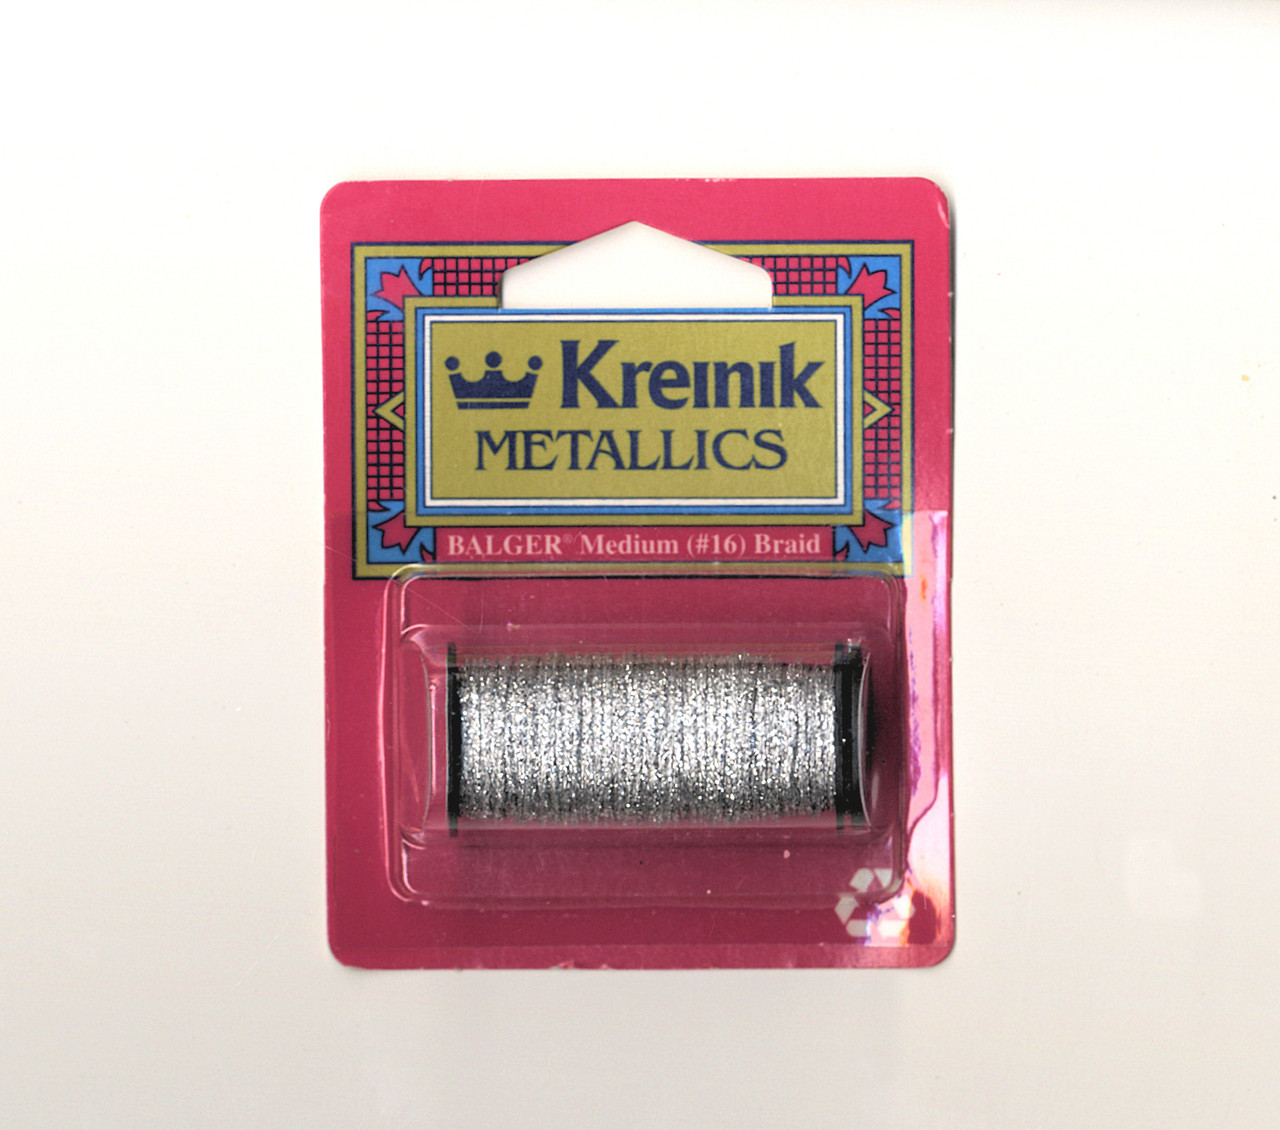 Kreinik Metallics - Medium #16 Silver #001